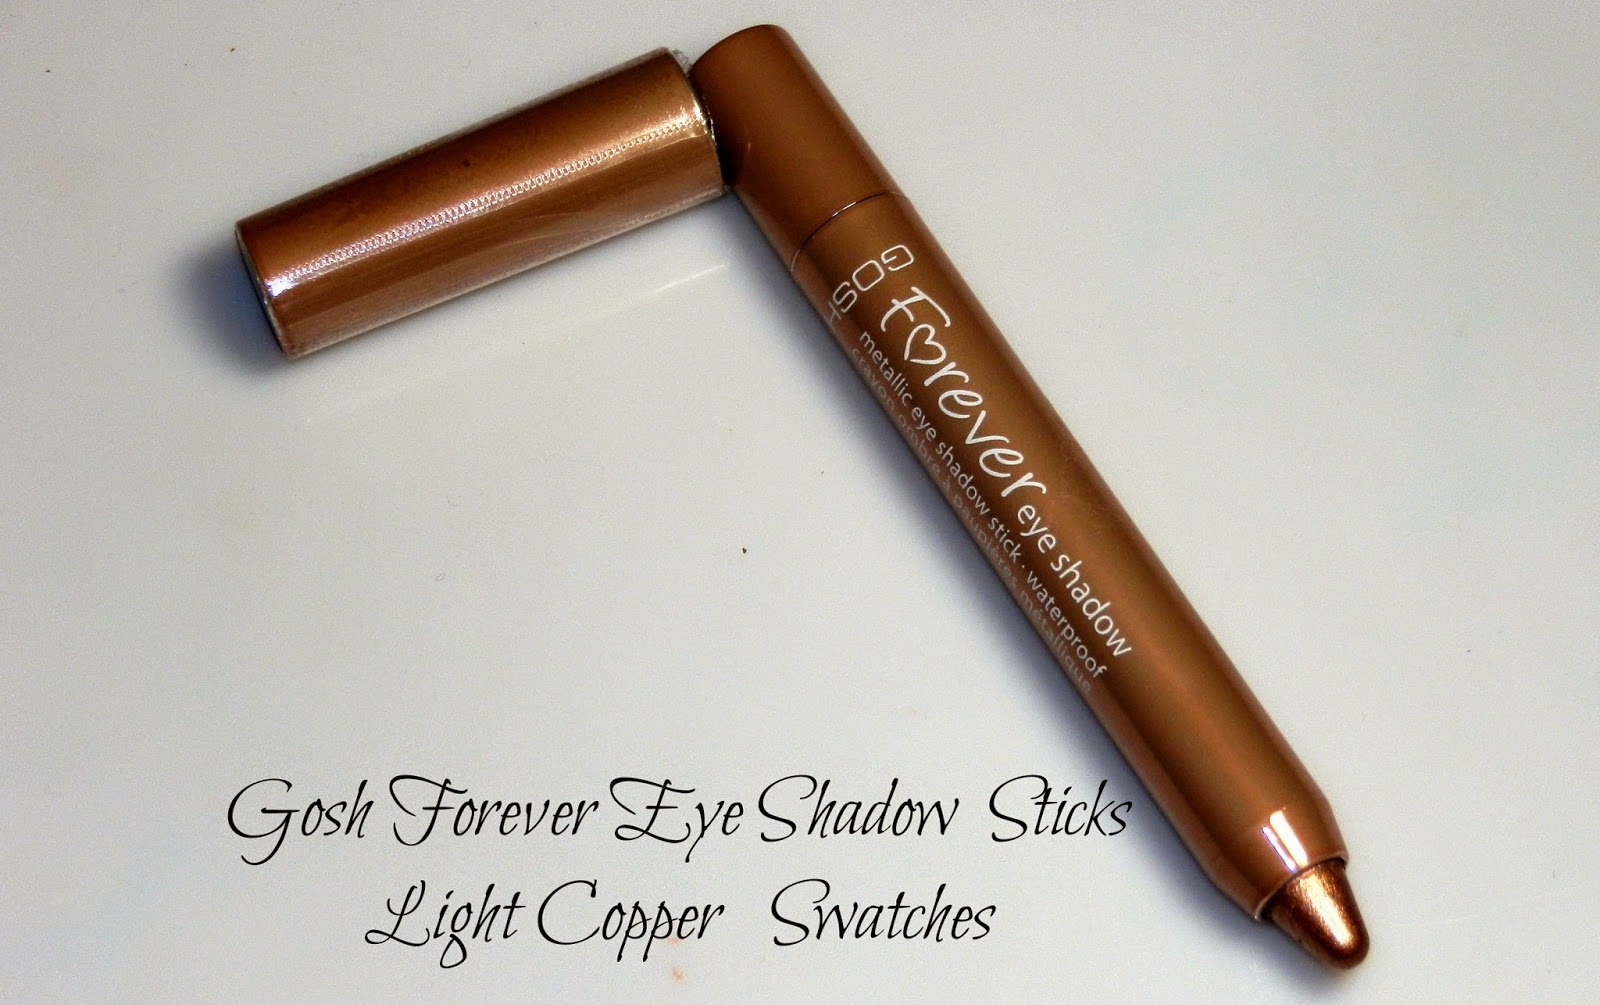 Gosh Forever Eye Shadow Sticks Light Copper Swatches